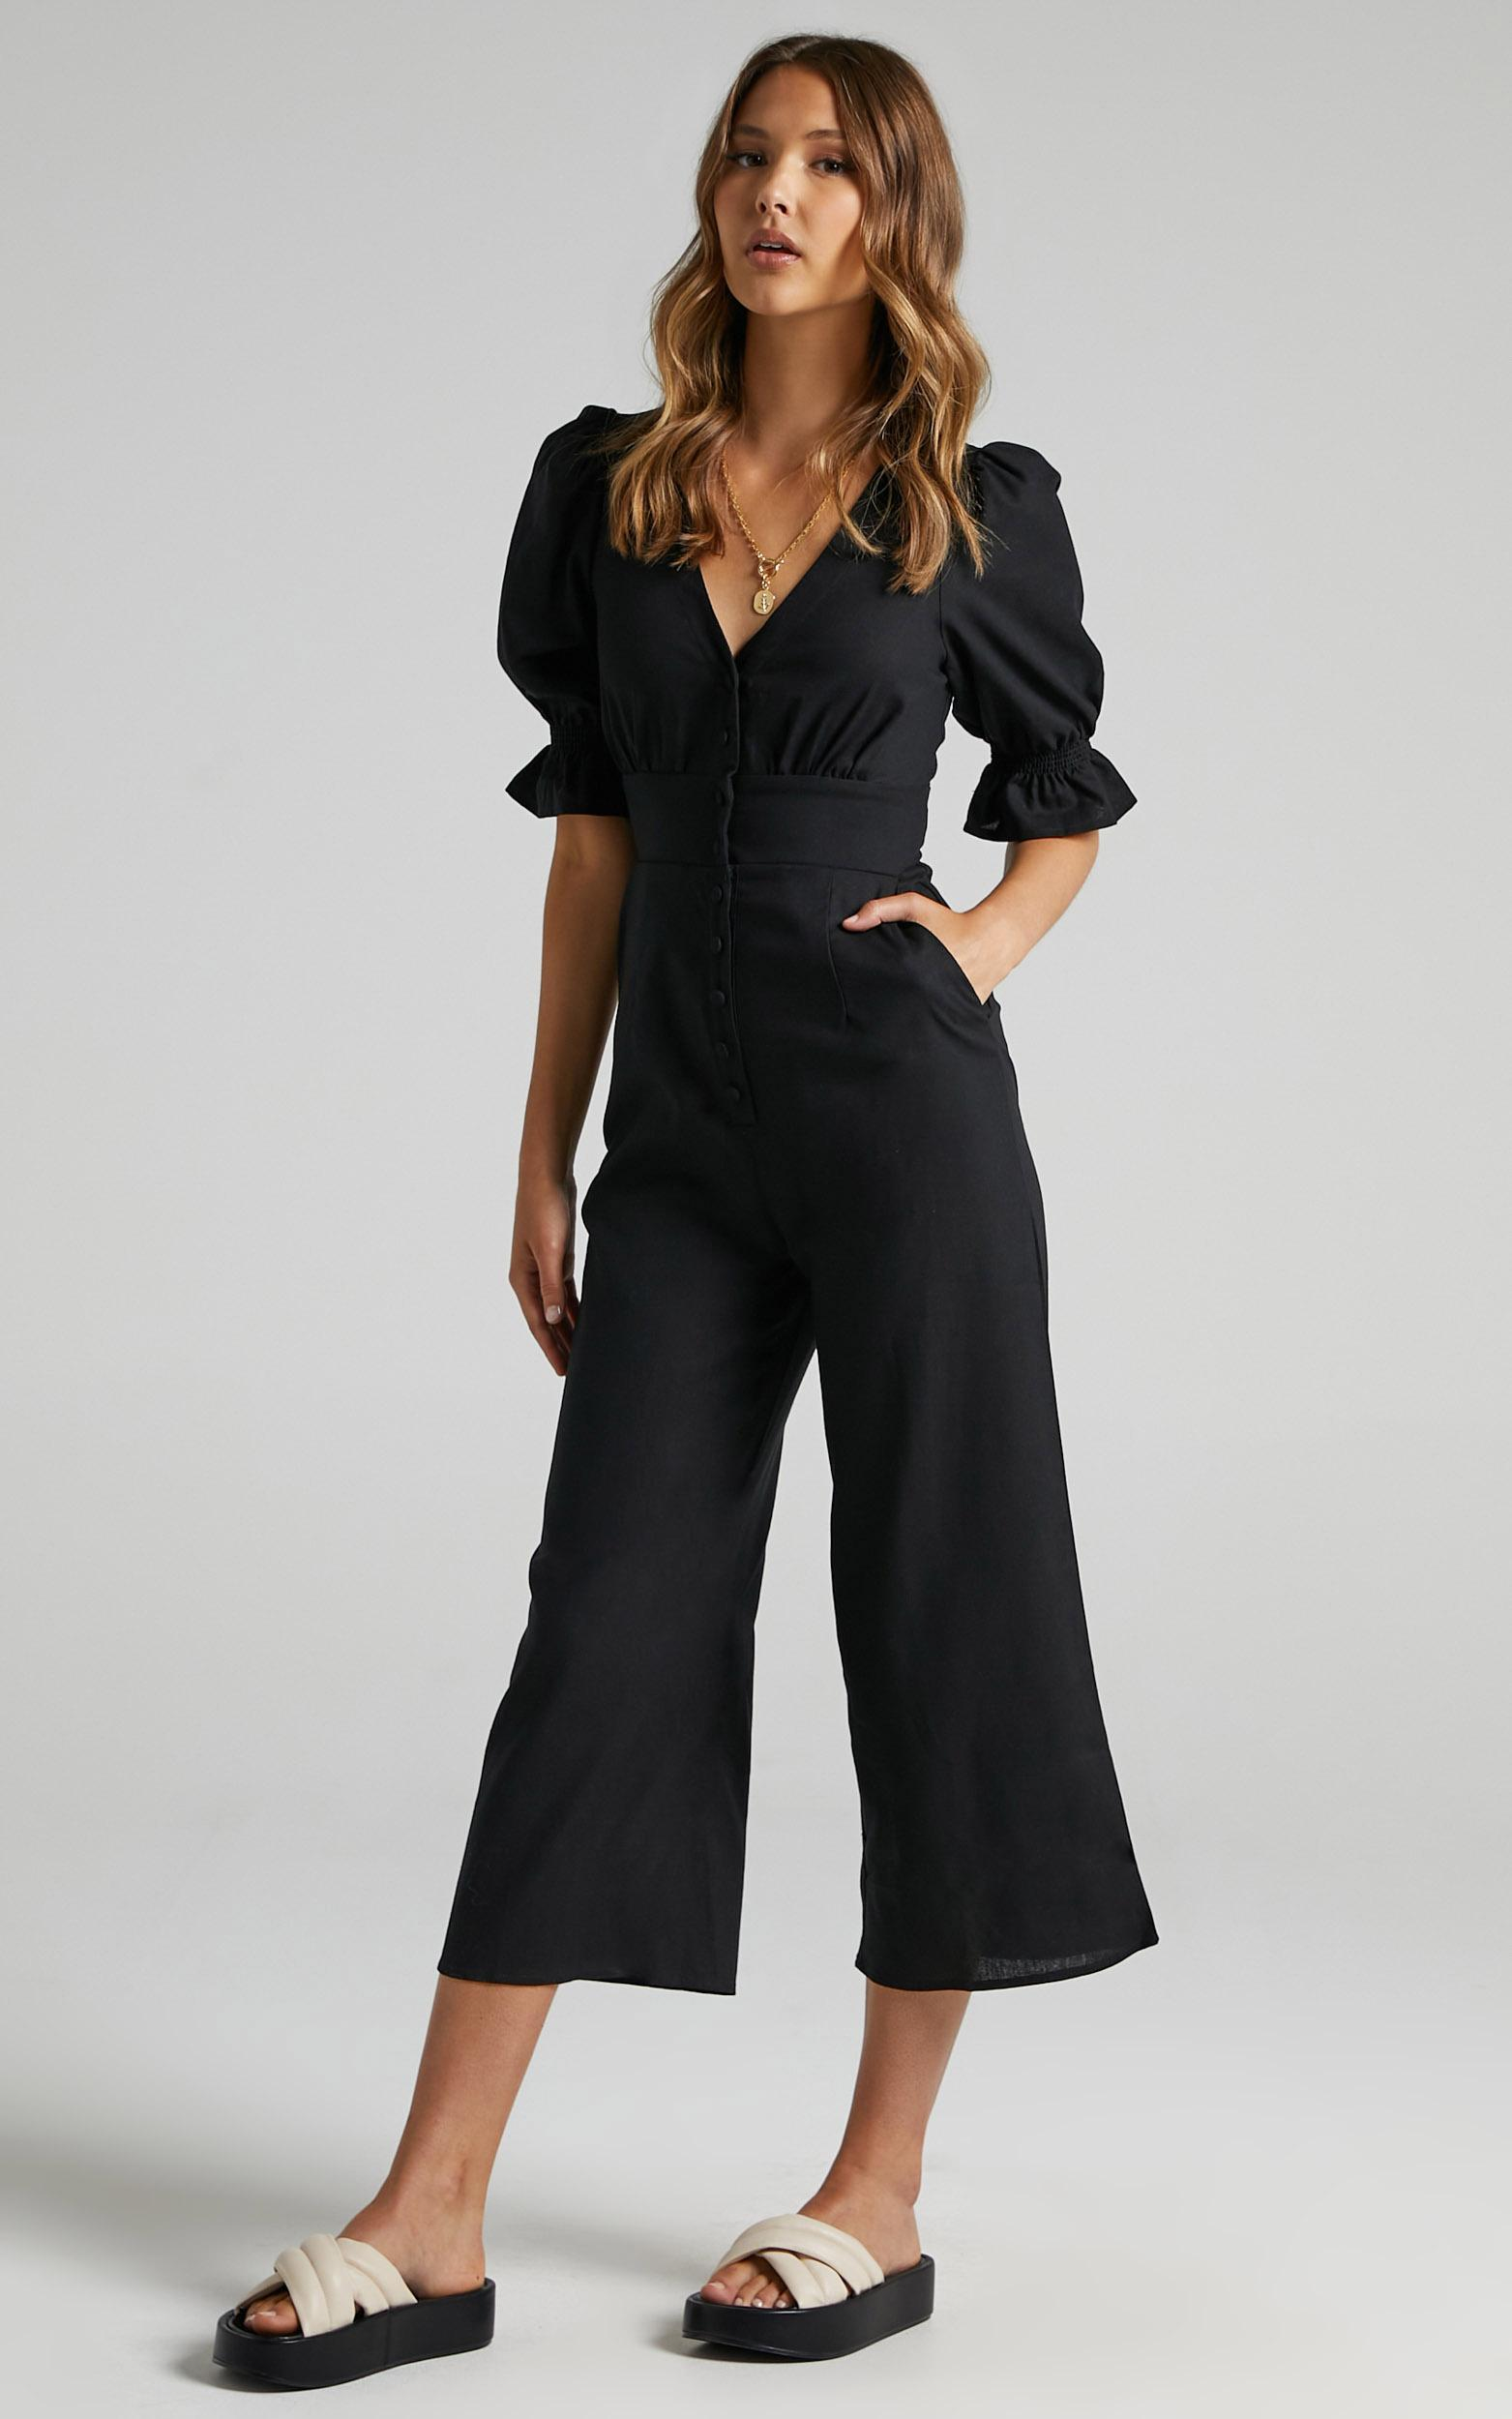 Arna Jumpsuit in Black - 6 (XS), Black, hi-res image number null